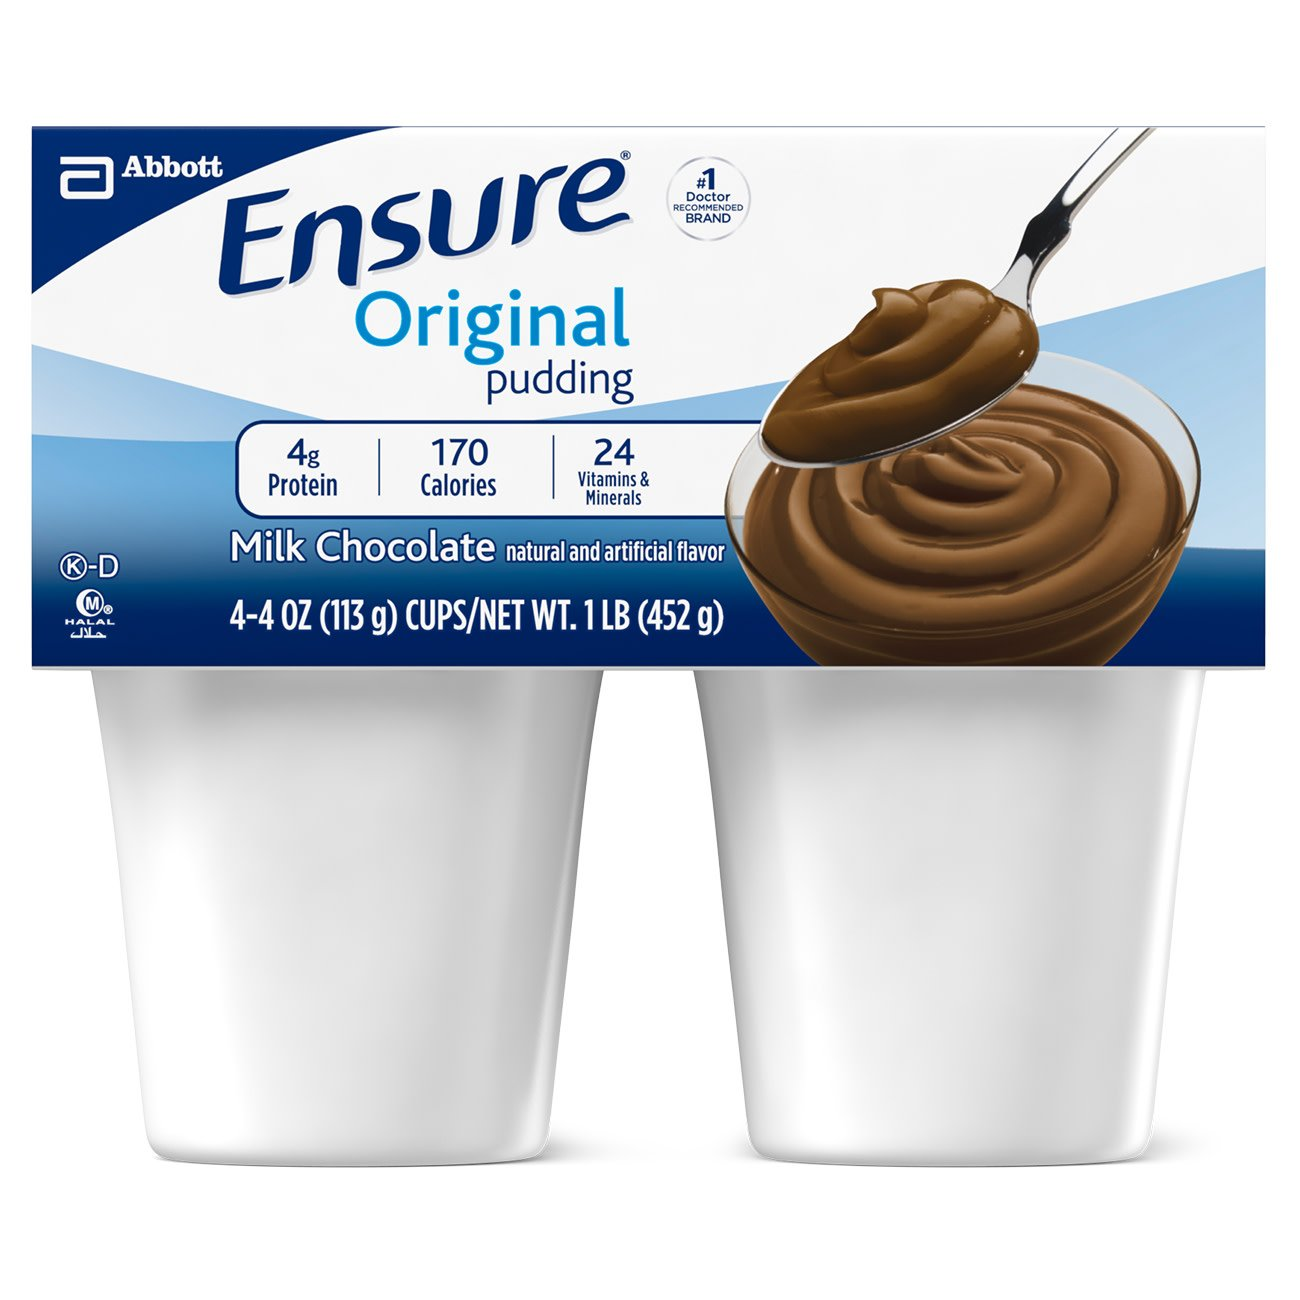 Ensure Pudding Creamy Milk Chocolate Flavor 4 oz. Cup Ready to Use, 54846 - Case of 48